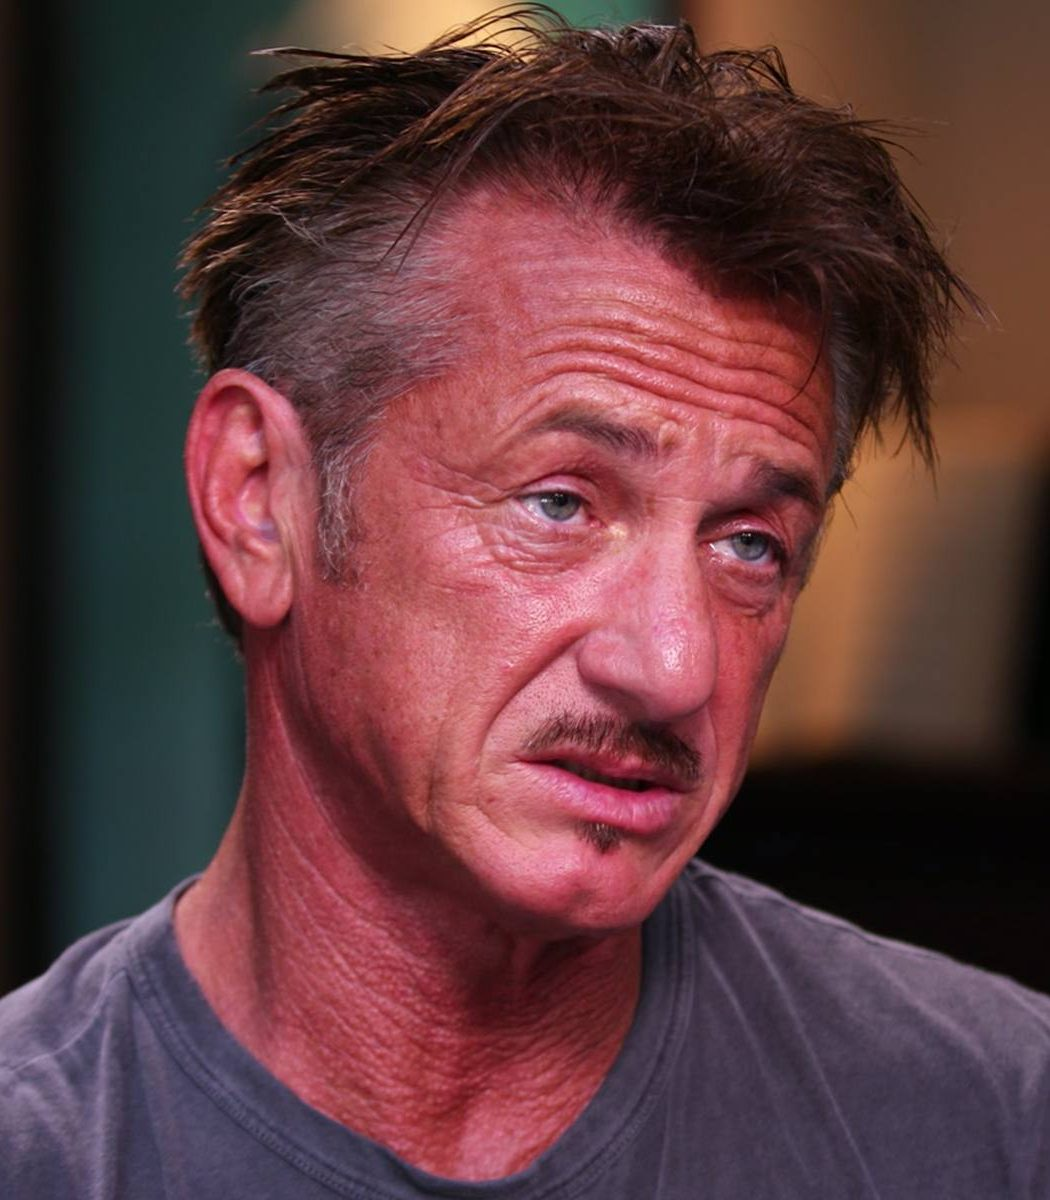 tdy sean penn screener 180917 8fdeff9fce23217d60b23c1203c19c63 e1561109417860 20 Celebrities You Didn't Know Had Committed Crimes